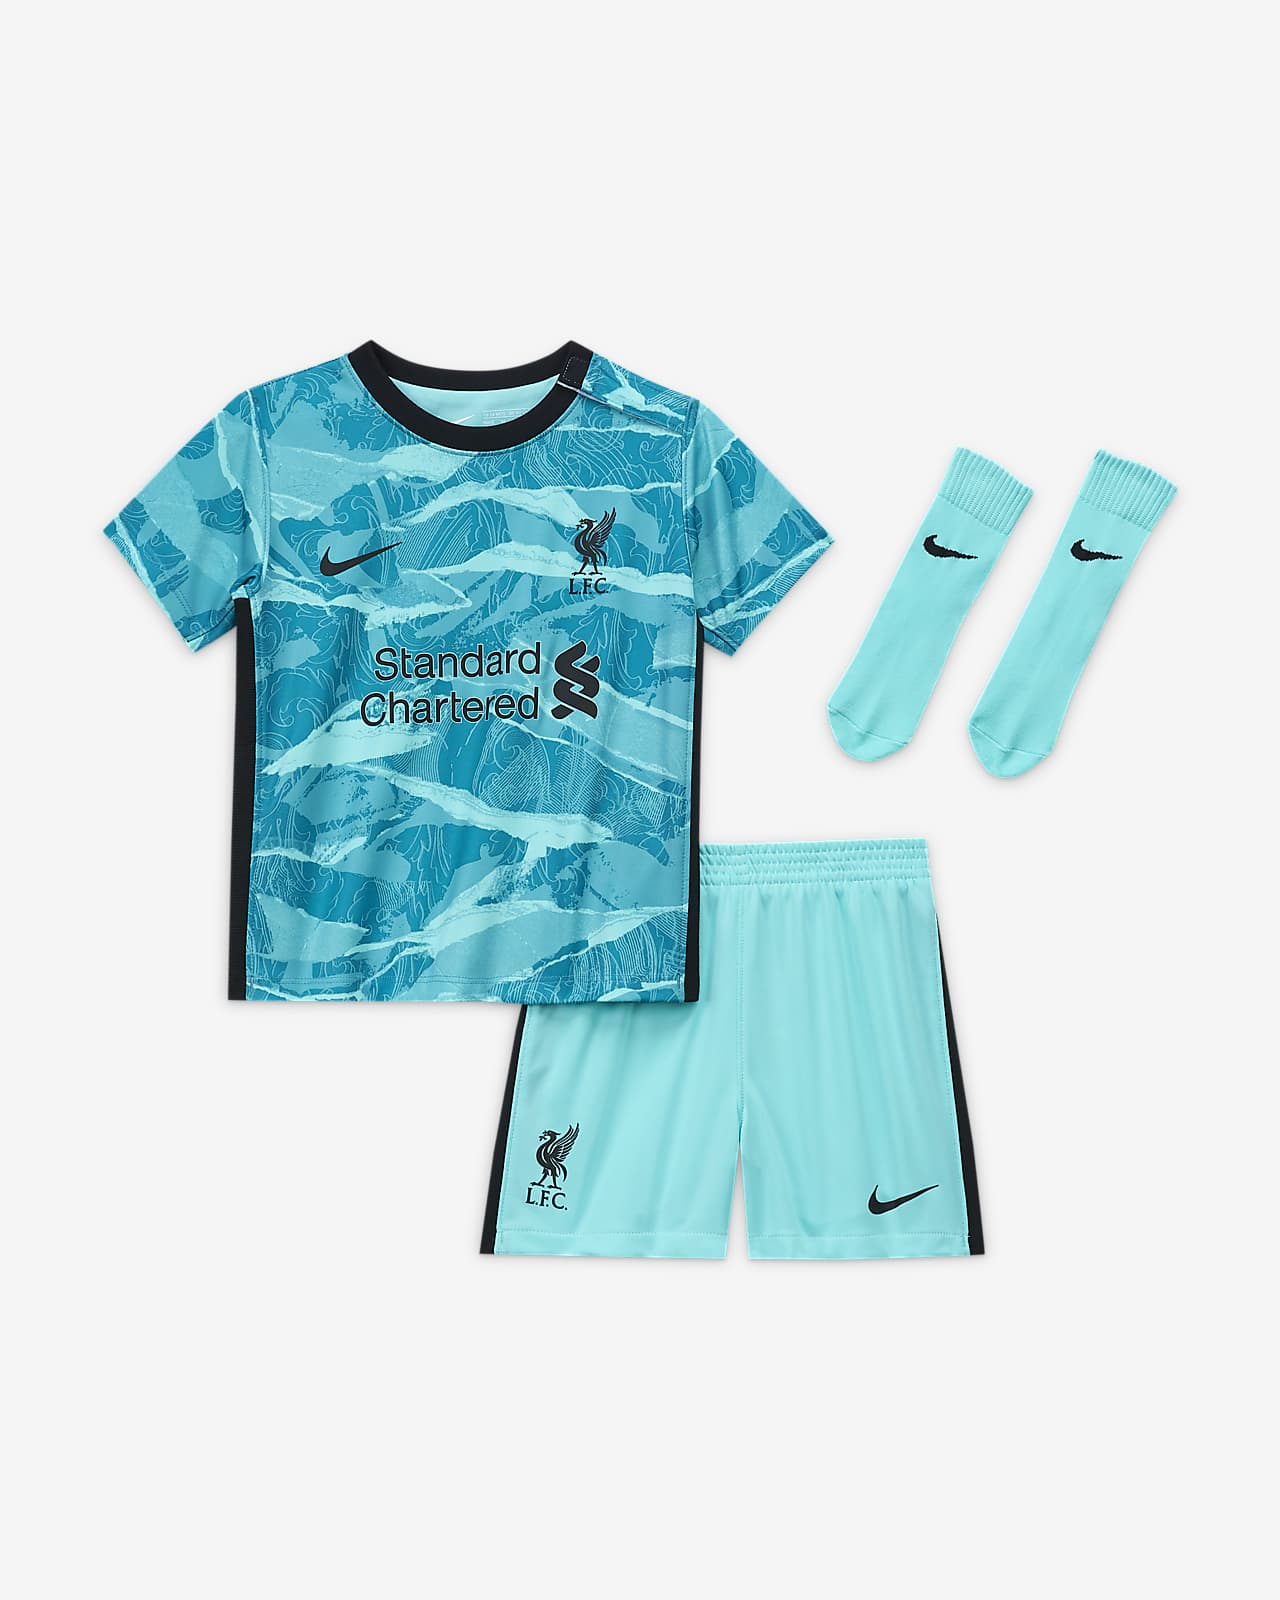 Liverpool FC 2020/21 Away Baby and Toddler Football Kit